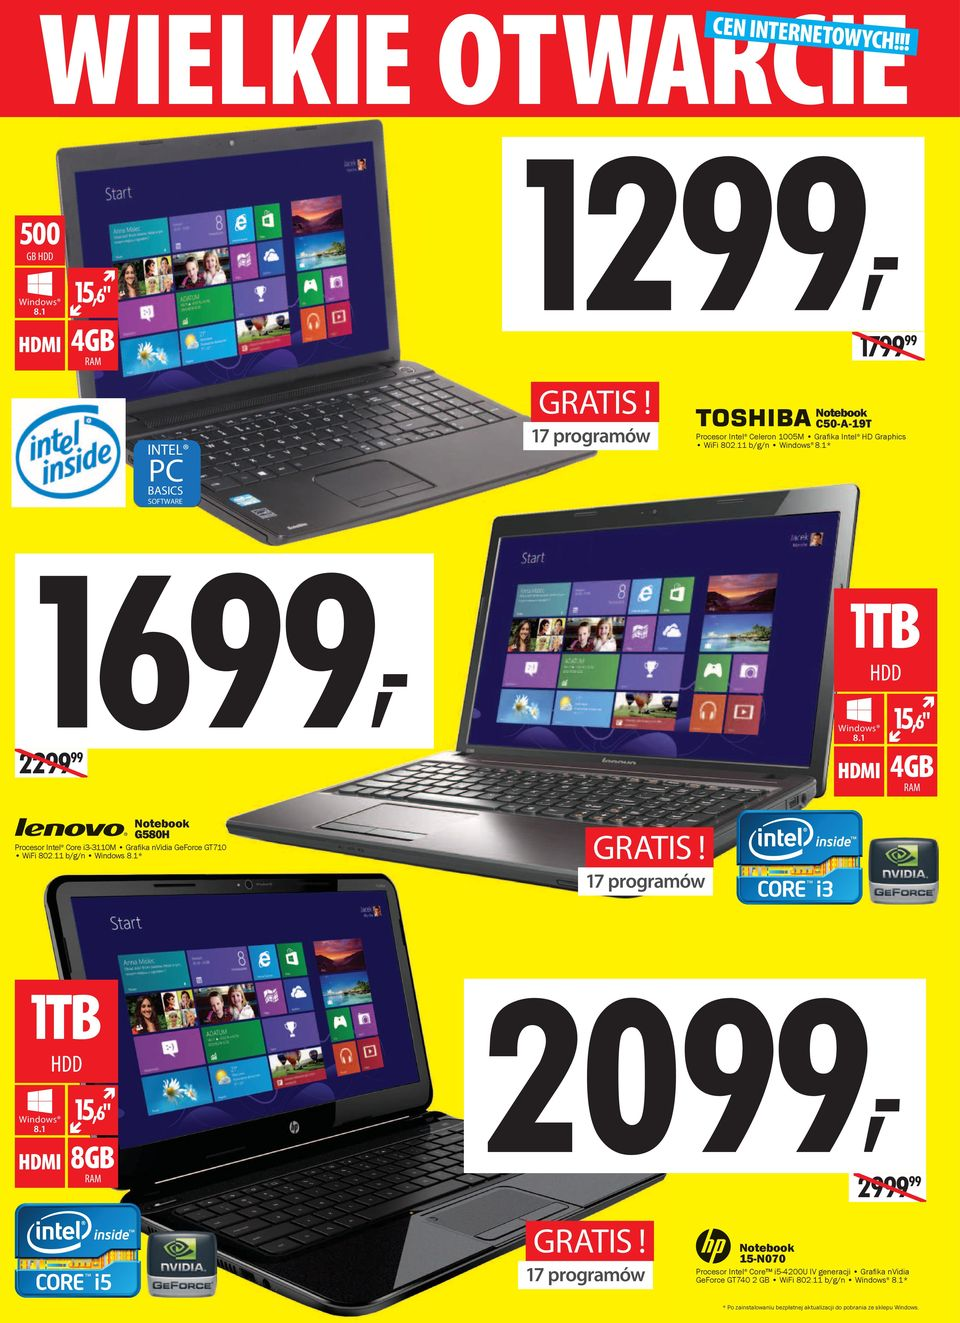 "1 15,6"" HDD 4GB RAM Notebook G580H Procesor Intel Core i3-3110m Grafika nvidia GeForce GT710 WiFi 802.11 b/g/n Windows 8.1* GRATIS! 17 programów 1TB Windows 8."